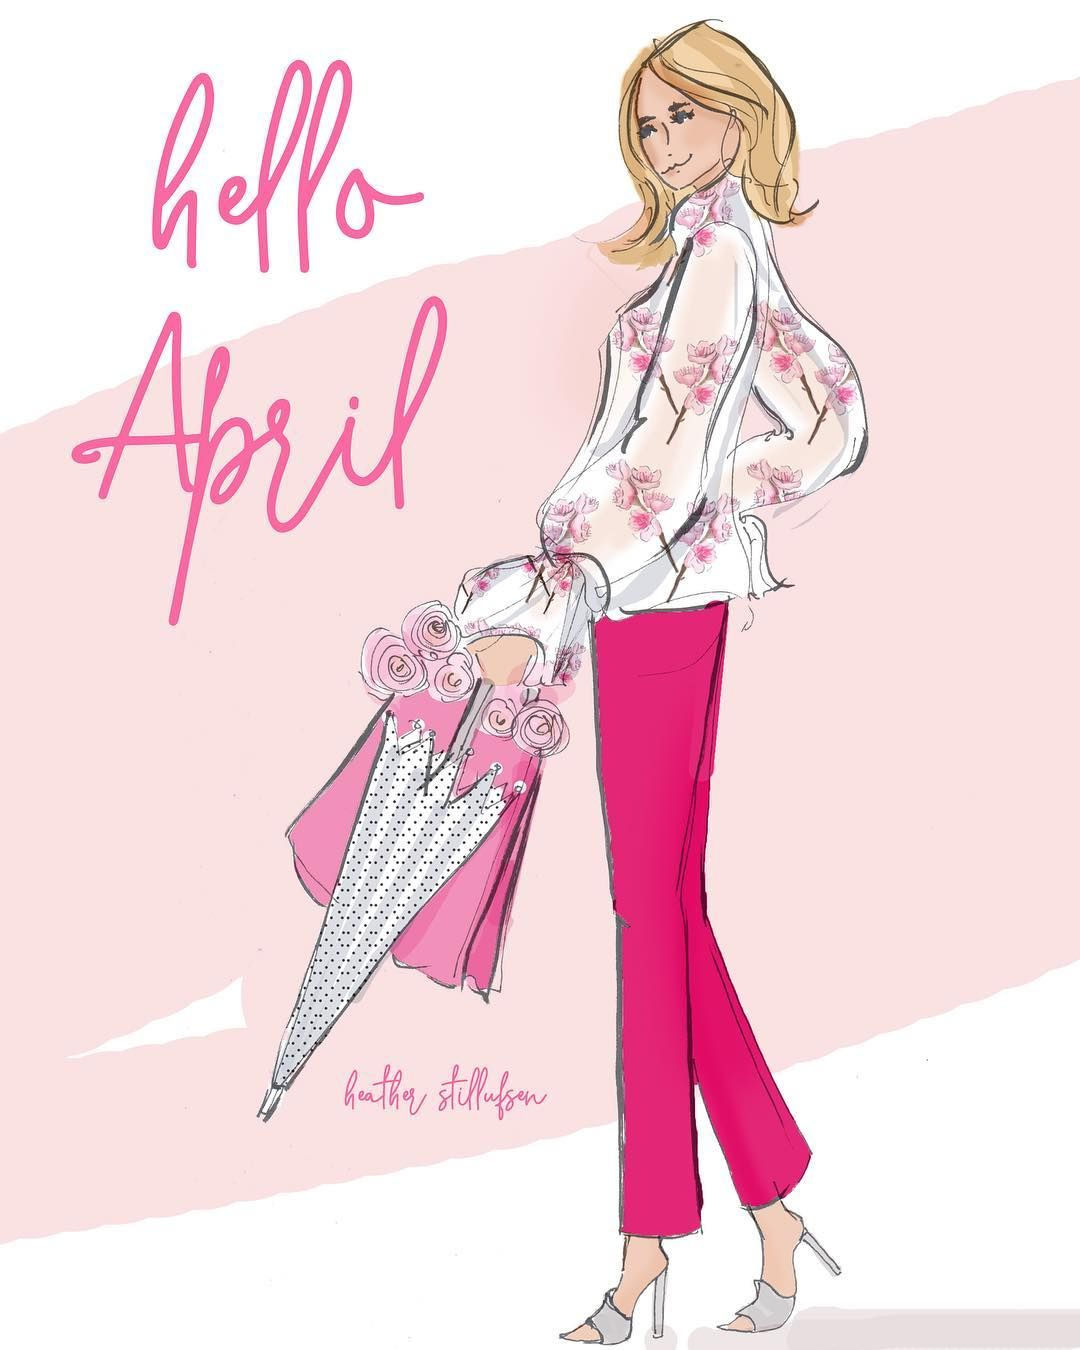 "Heather 🌸 Stillufsen on Instagram: ""Hello 🌸 April ..."